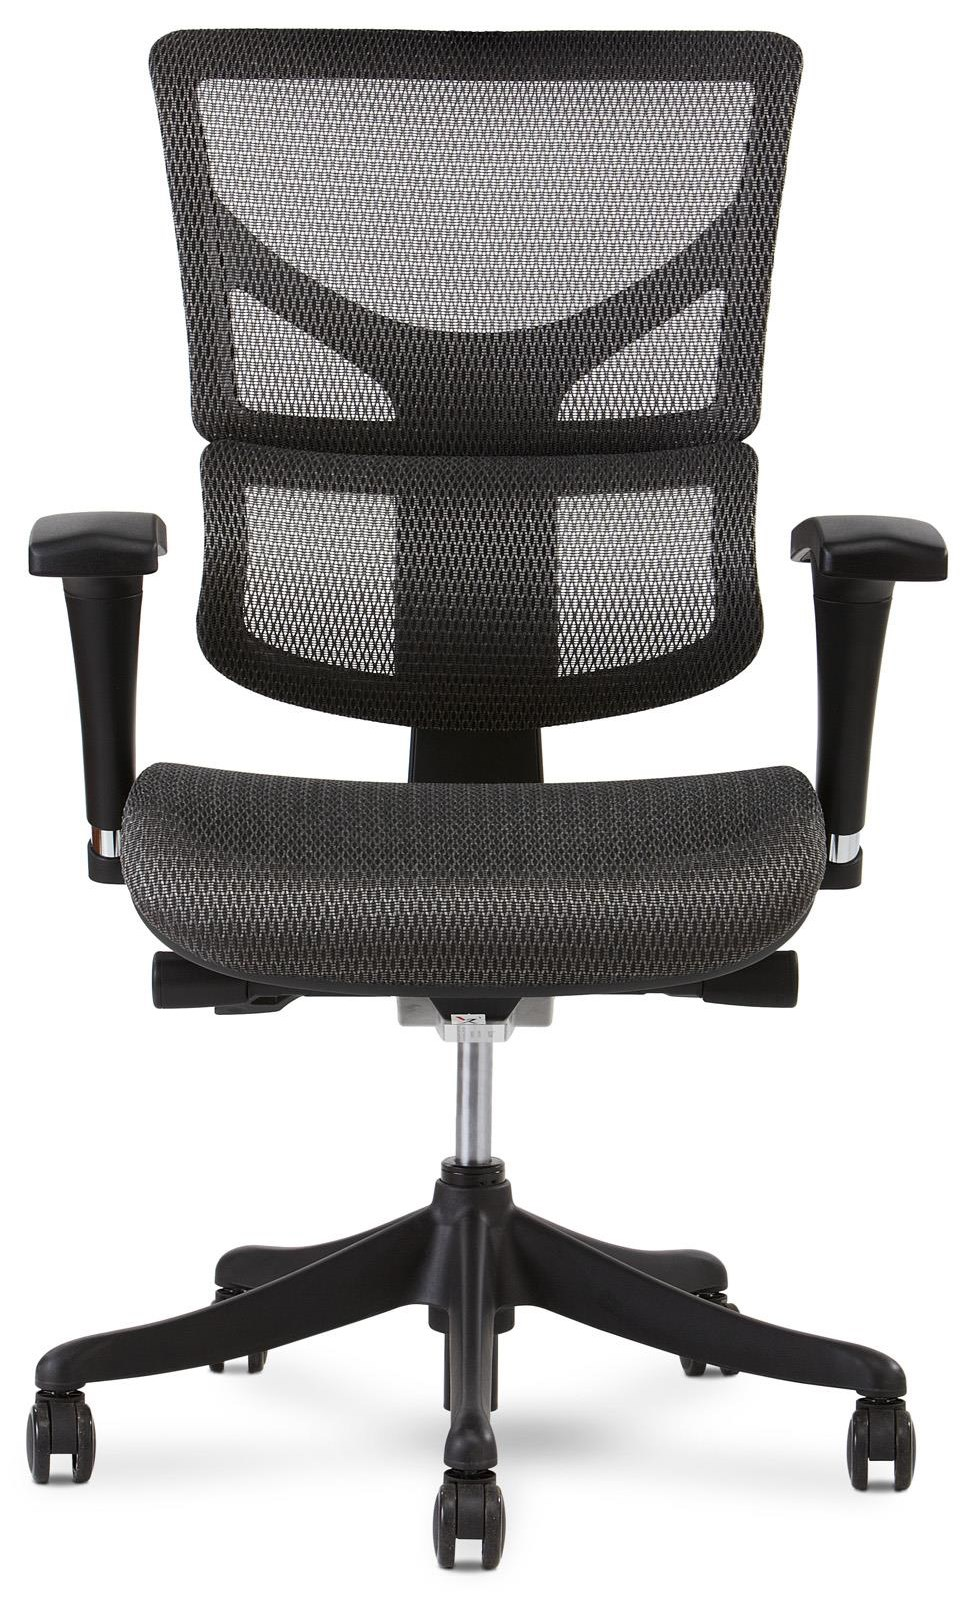 X-1 Desk Chair by X-Chair at Belfort Furniture